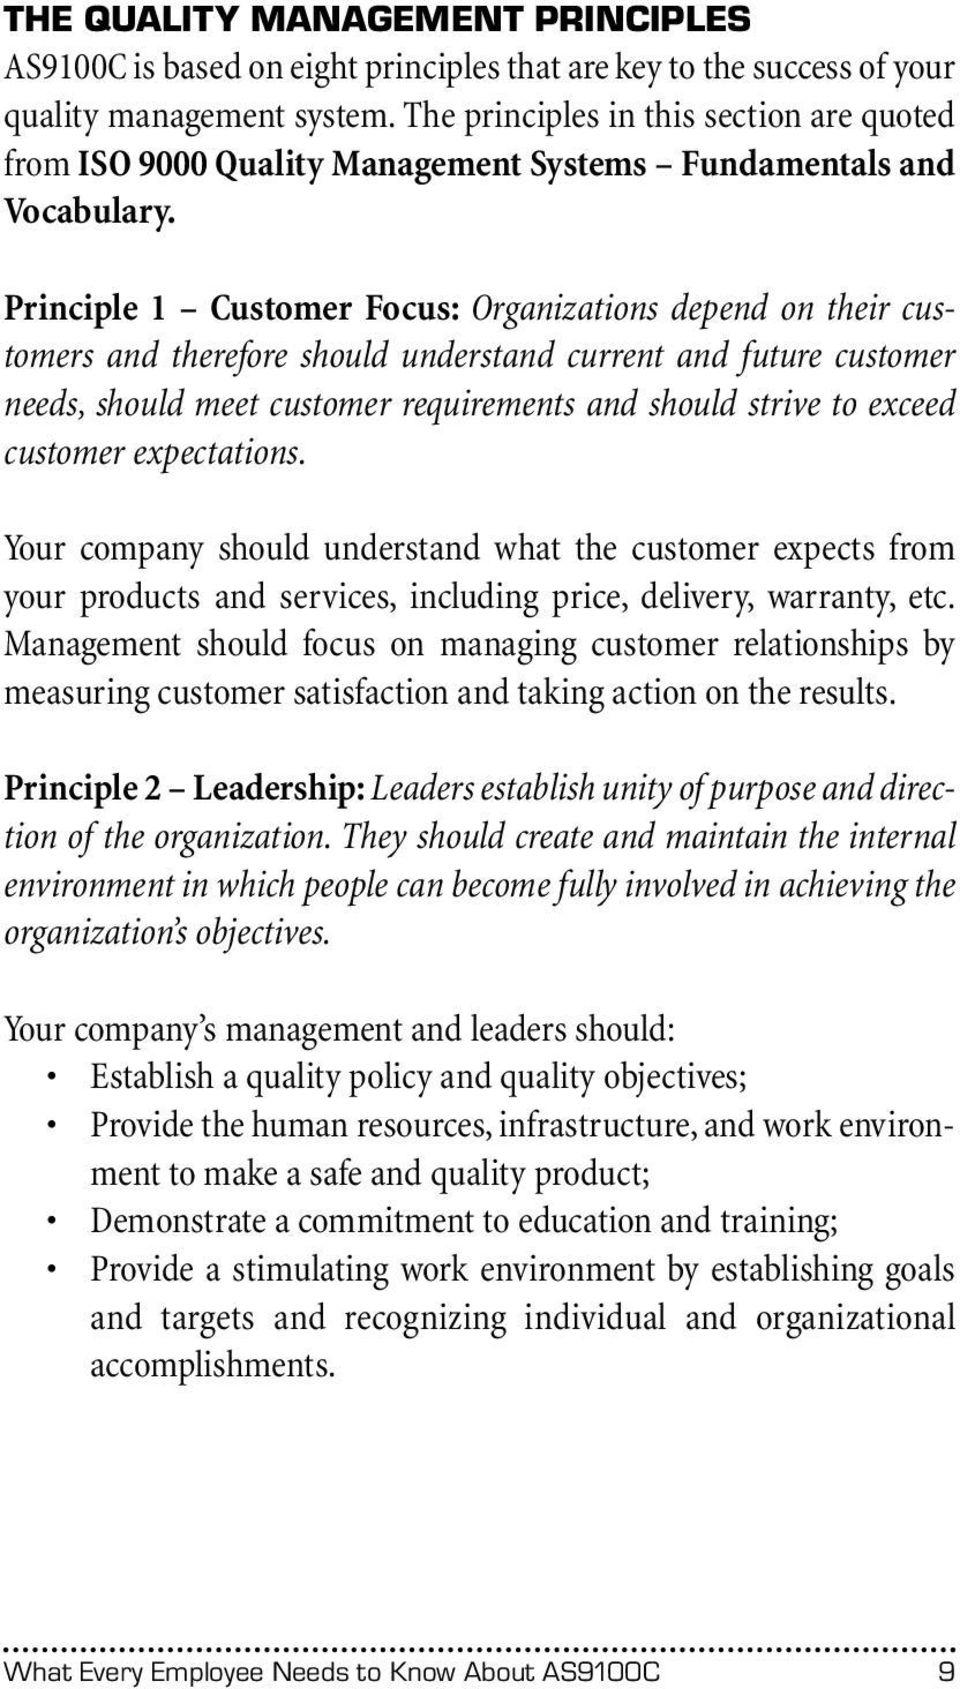 Principle 1 Customer Focus: Organizations depend on their customers and therefore should understand current and future customer needs, should meet customer requirements and should strive to exceed